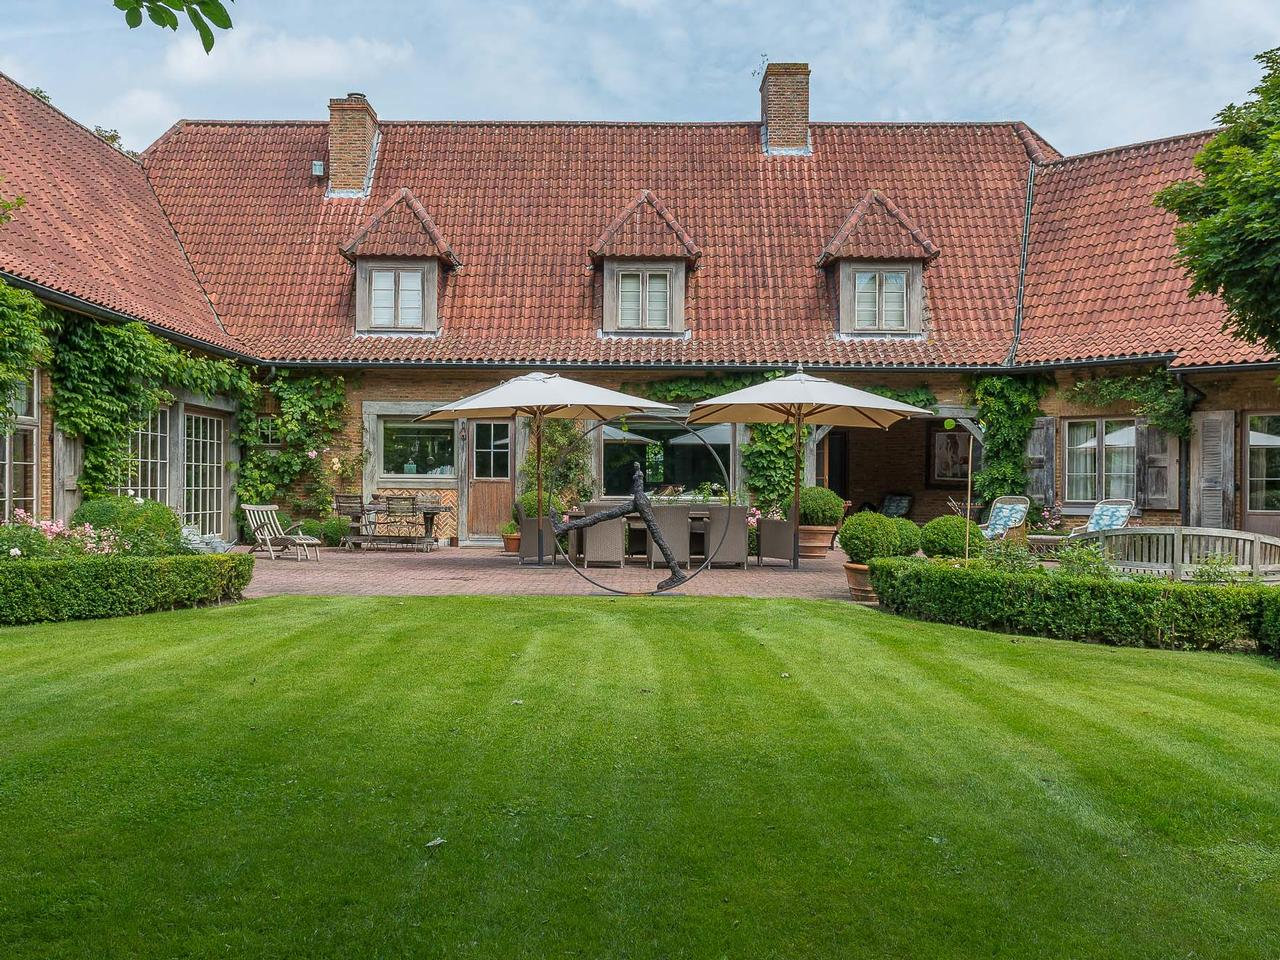 Other Residential for Sale at Flandres Occidentale I Waregem Golf Club Other Belgium, Other Areas In Belgium, 9790 Belgium